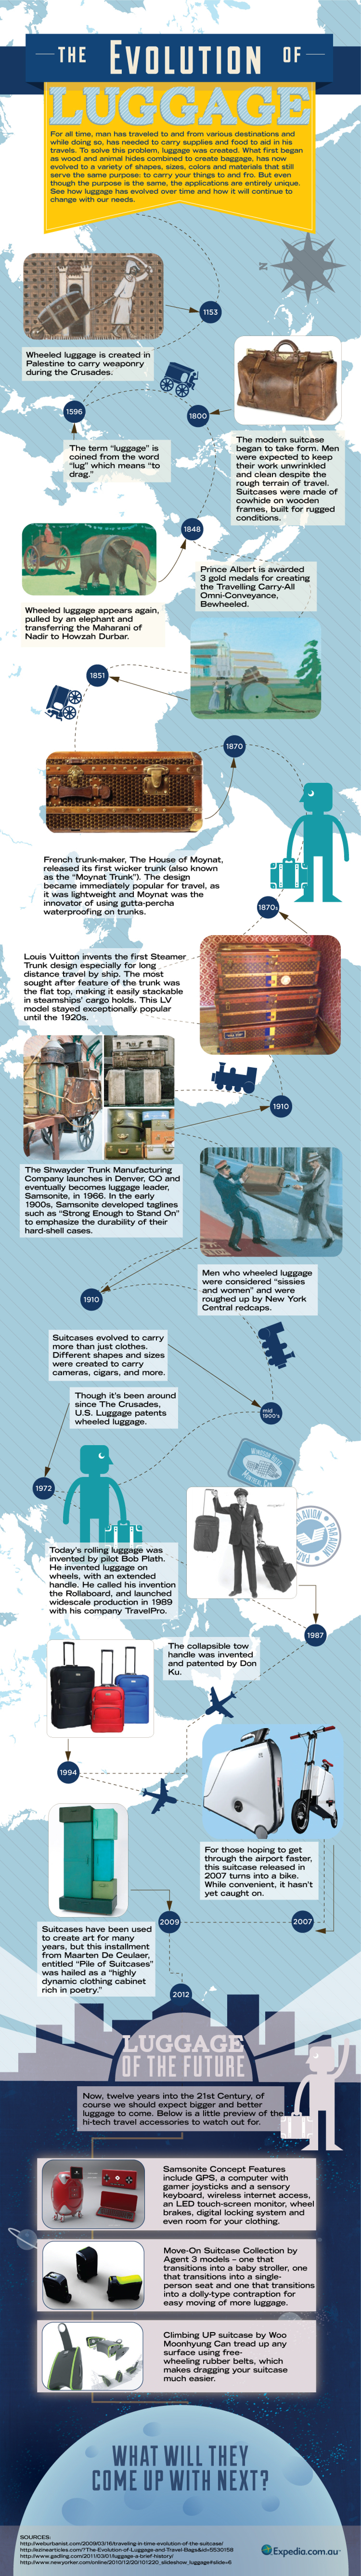 The Evolution of Luggage Infographic